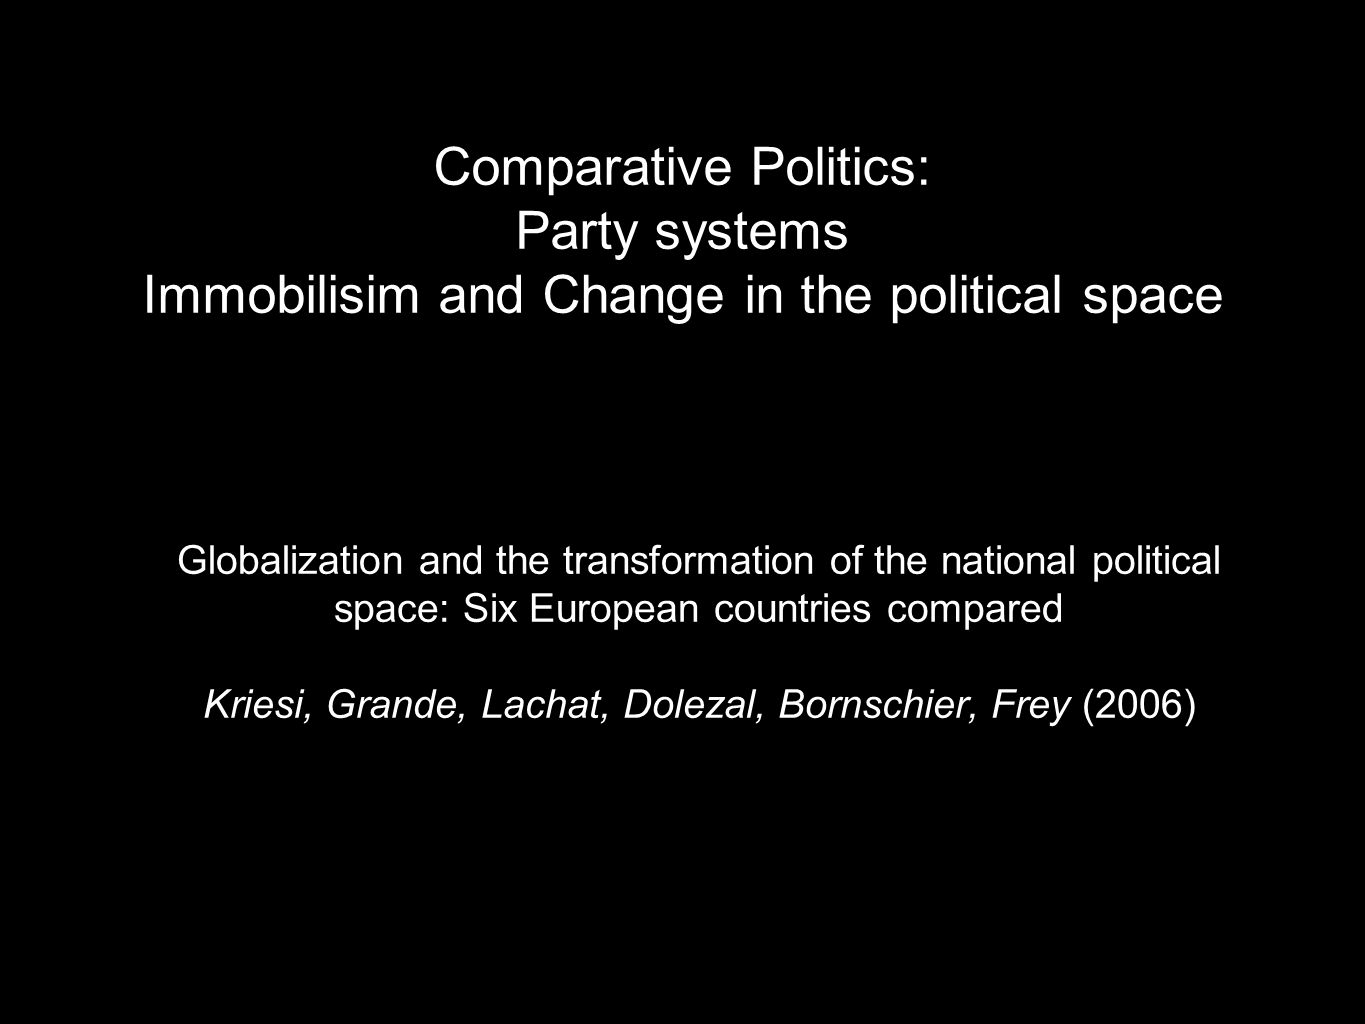 Globalization and the transformation of the national political space: Six European countries compared Kriesi, Grande, Lachat, Dolezal, Bornschier, Fre